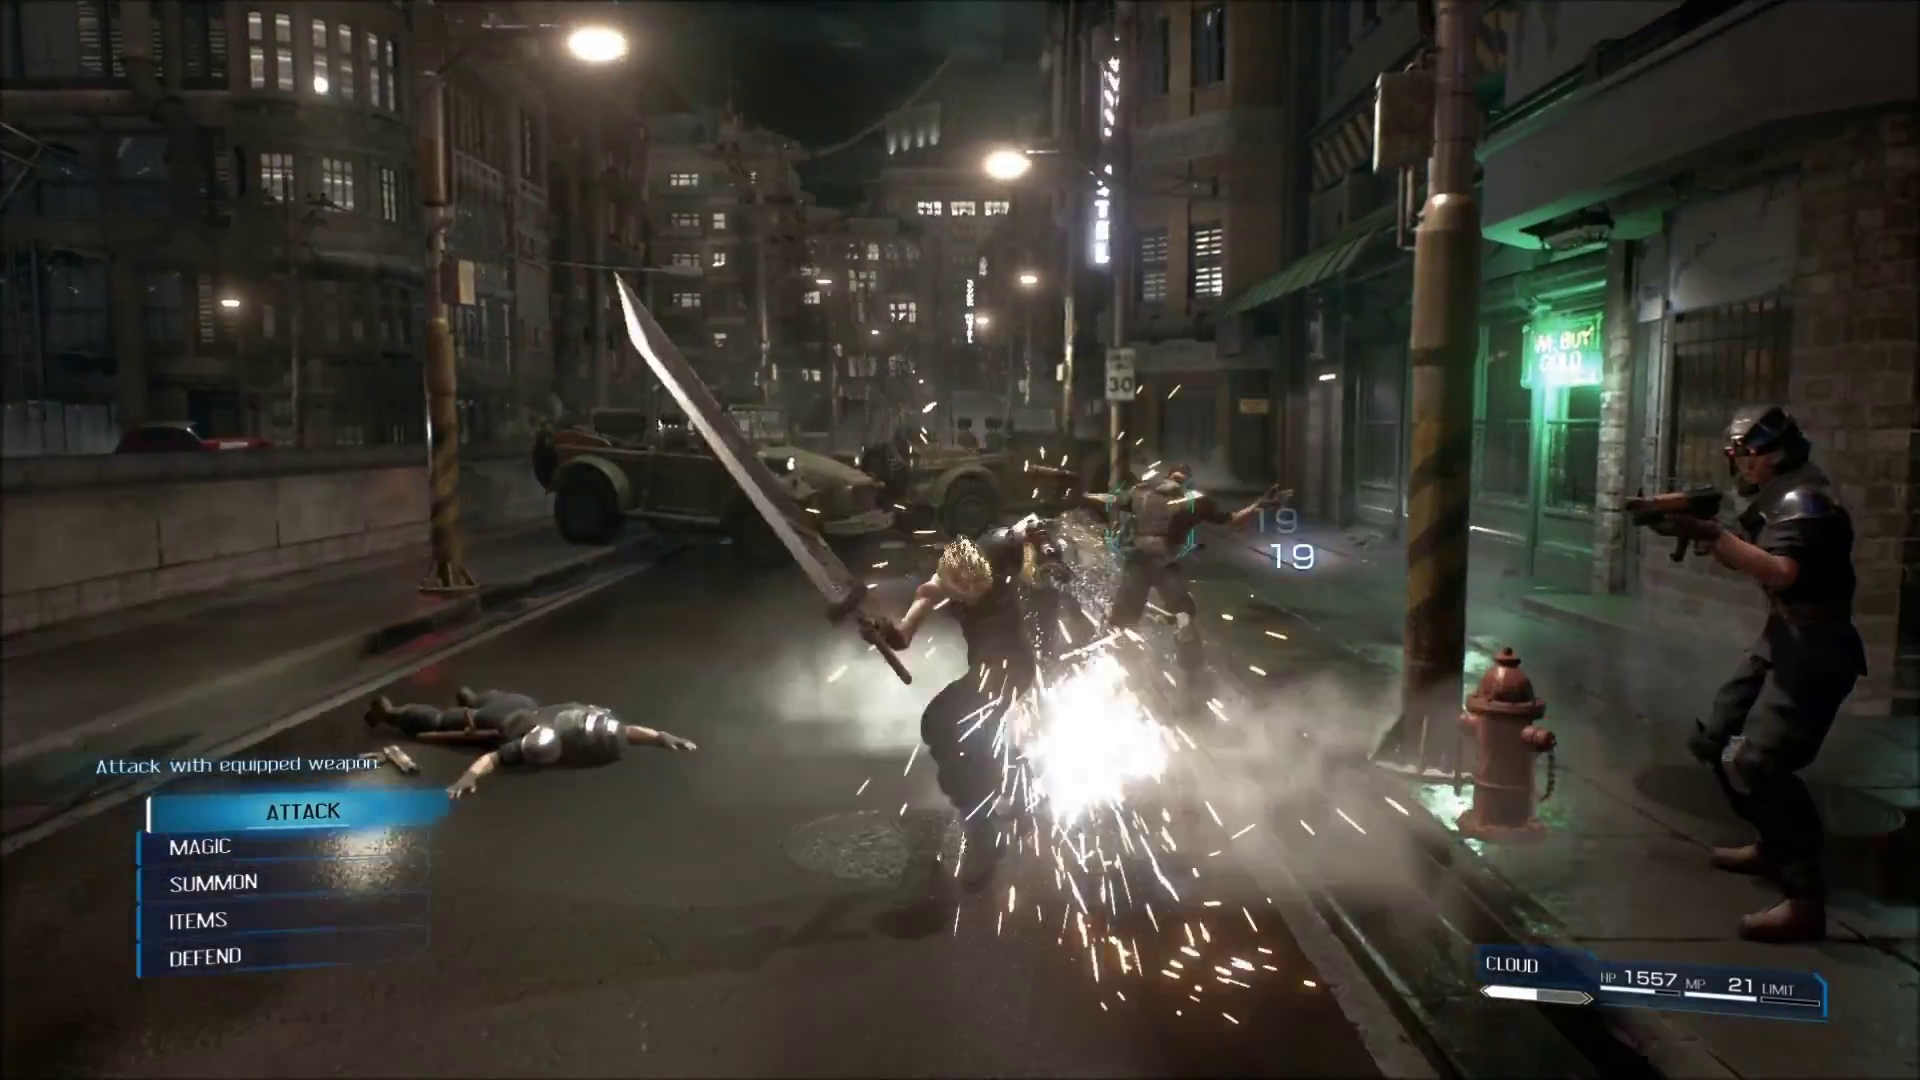 Final Fantasy VII Remake Trailer Offers First Glimpse of New Combat